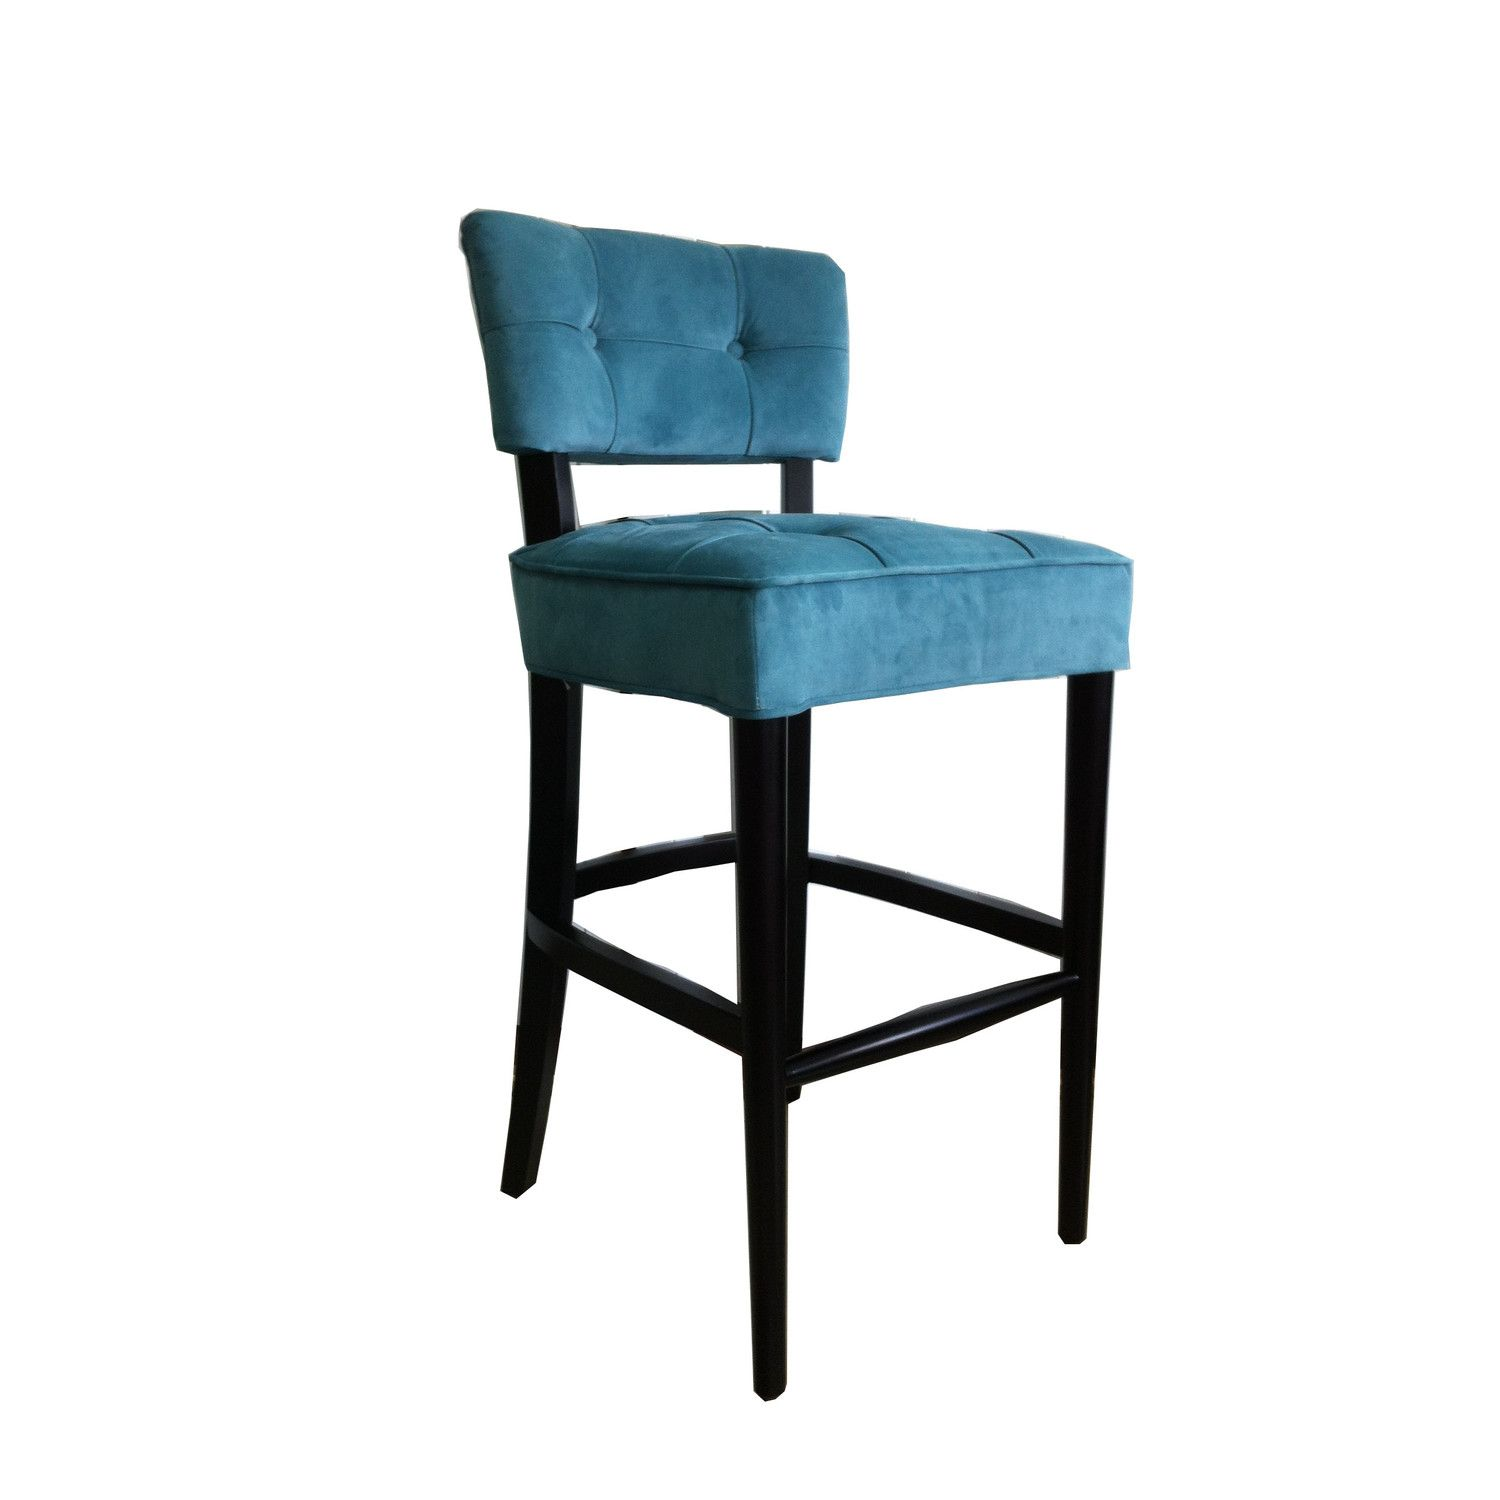 Just Cabinets Furniture And More Sophia 30 Quot Bar Stool With Cushion Bar Stools Just Cabinets Stool